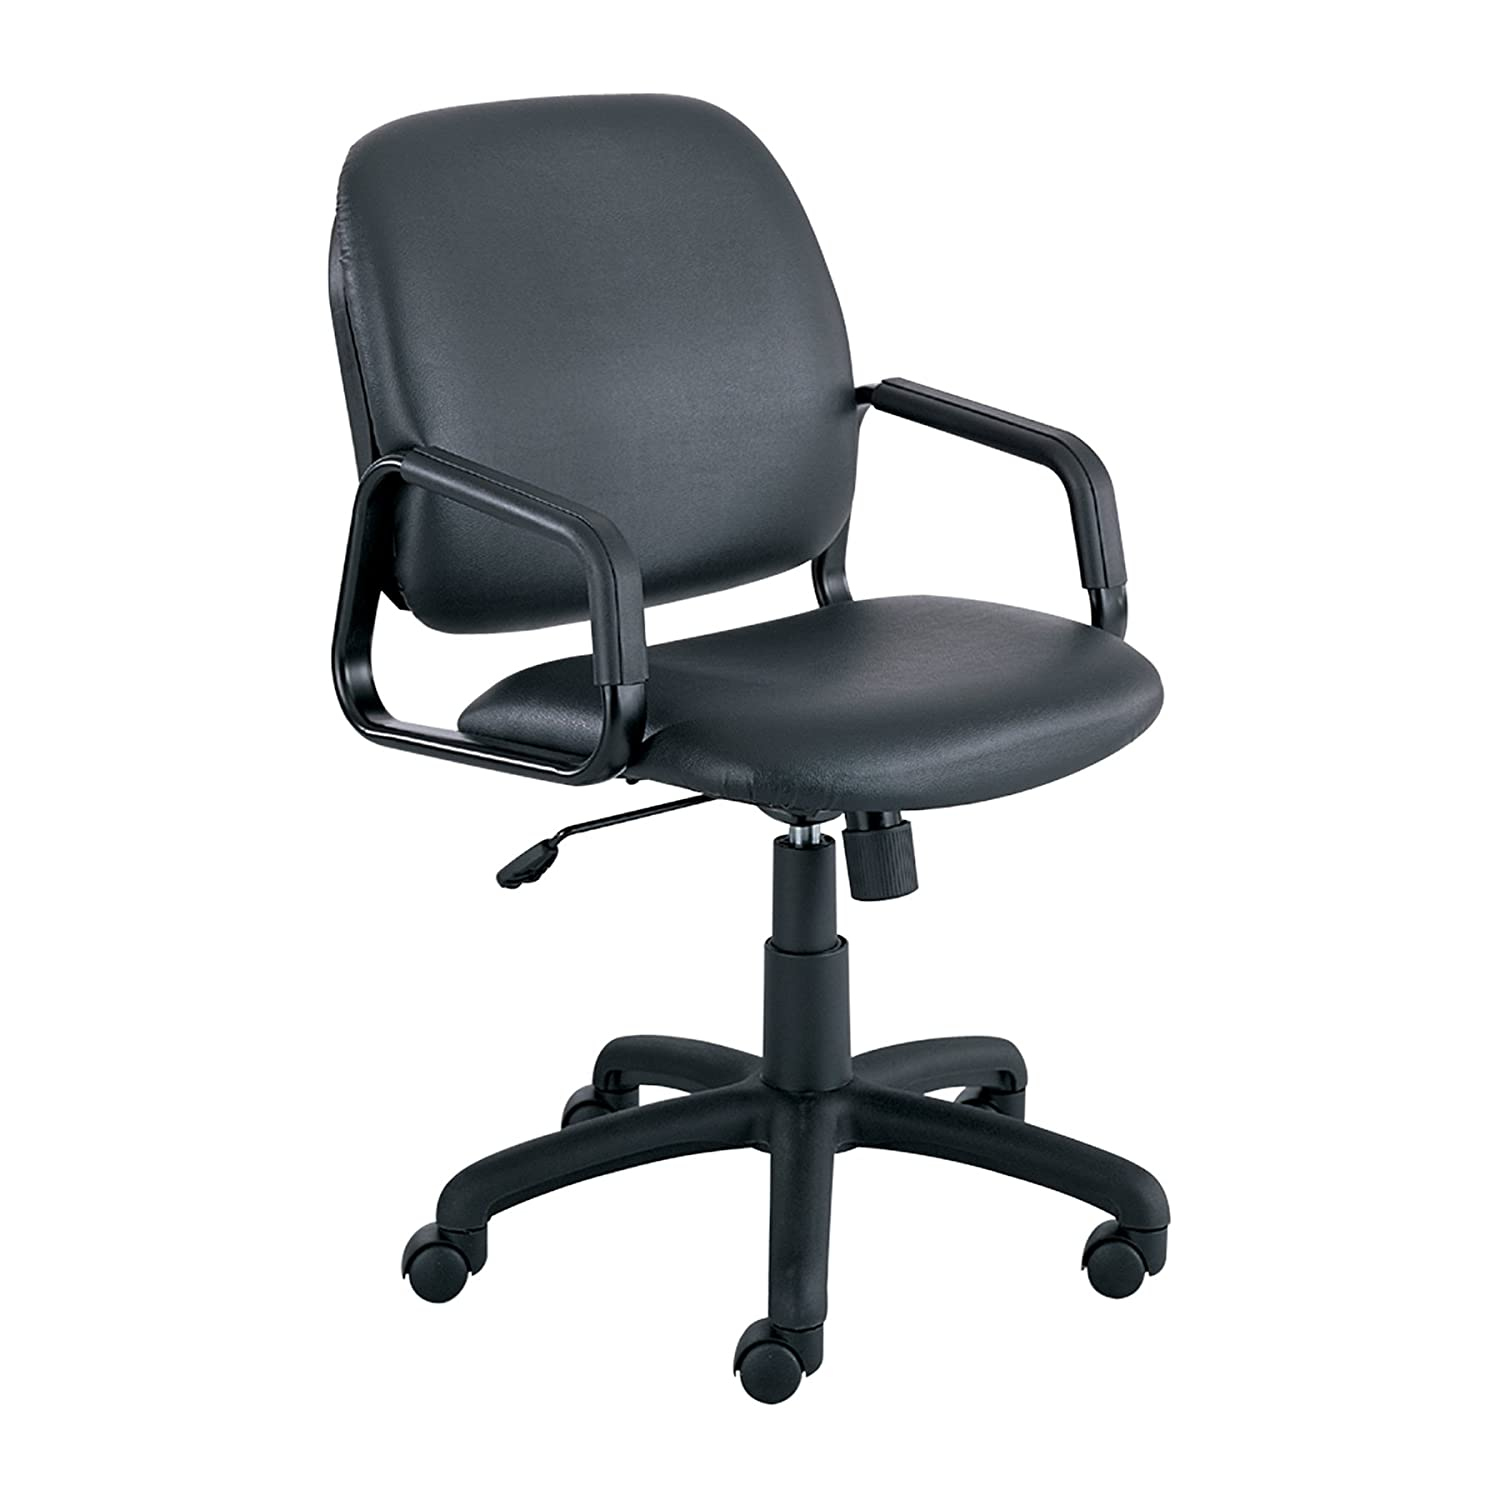 Best office chair 2016 - Safco Products 7045bv Cava Urth High Back Chair Black Vinyl